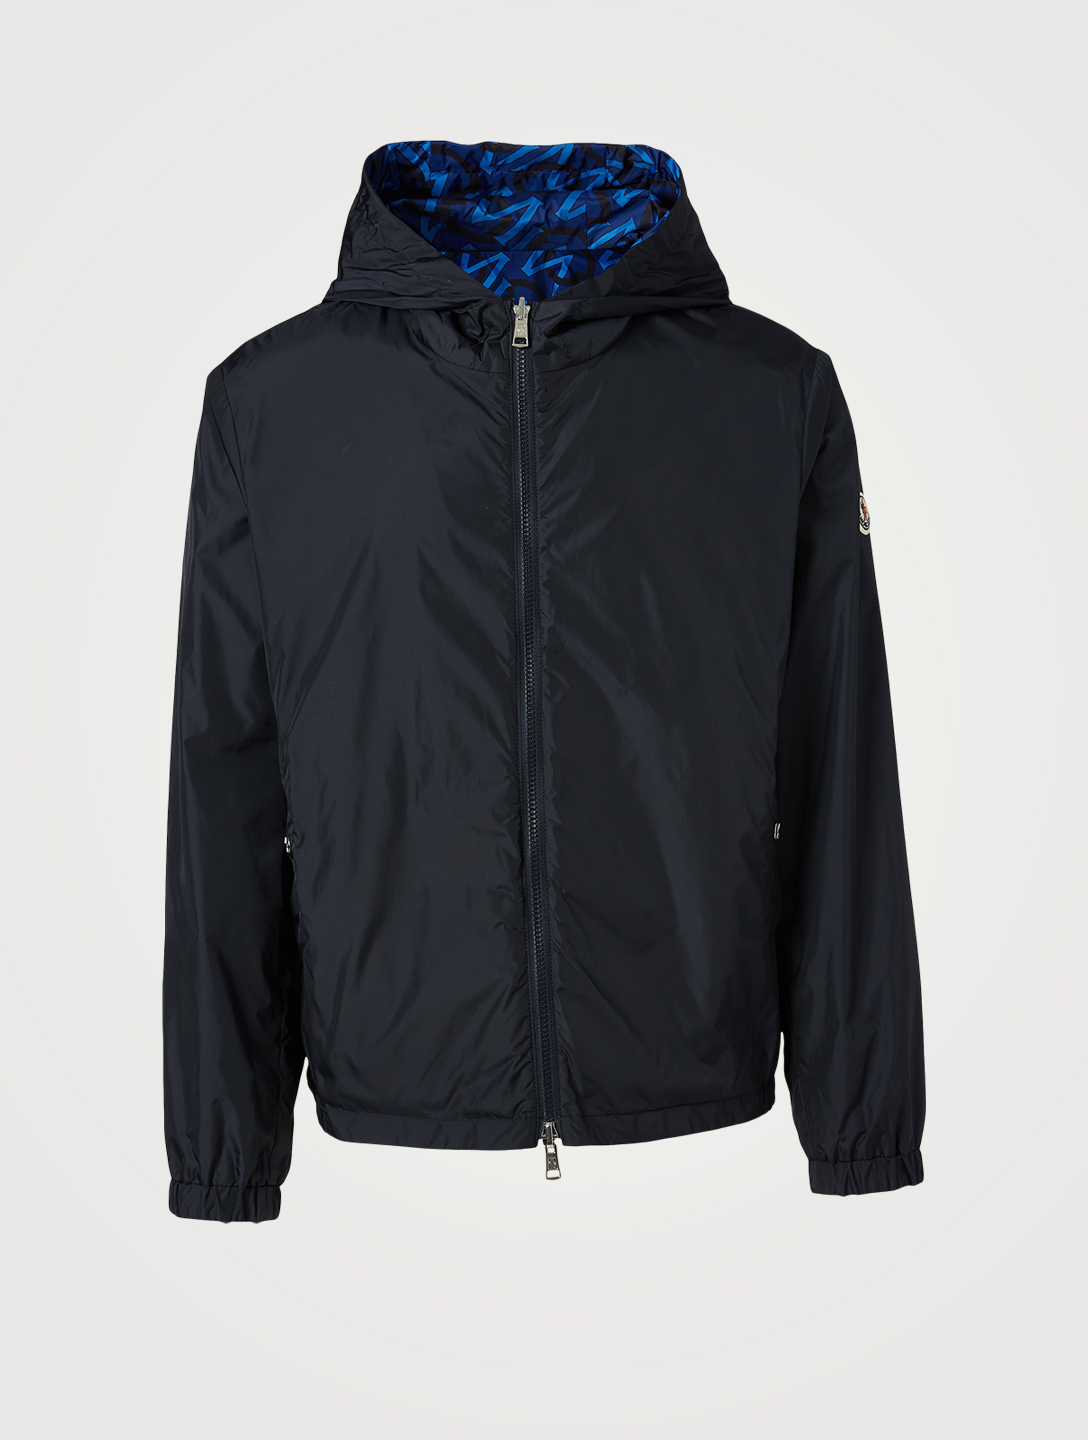 MONCLER Cretes Reversible Jacket With Hood Men's Blue